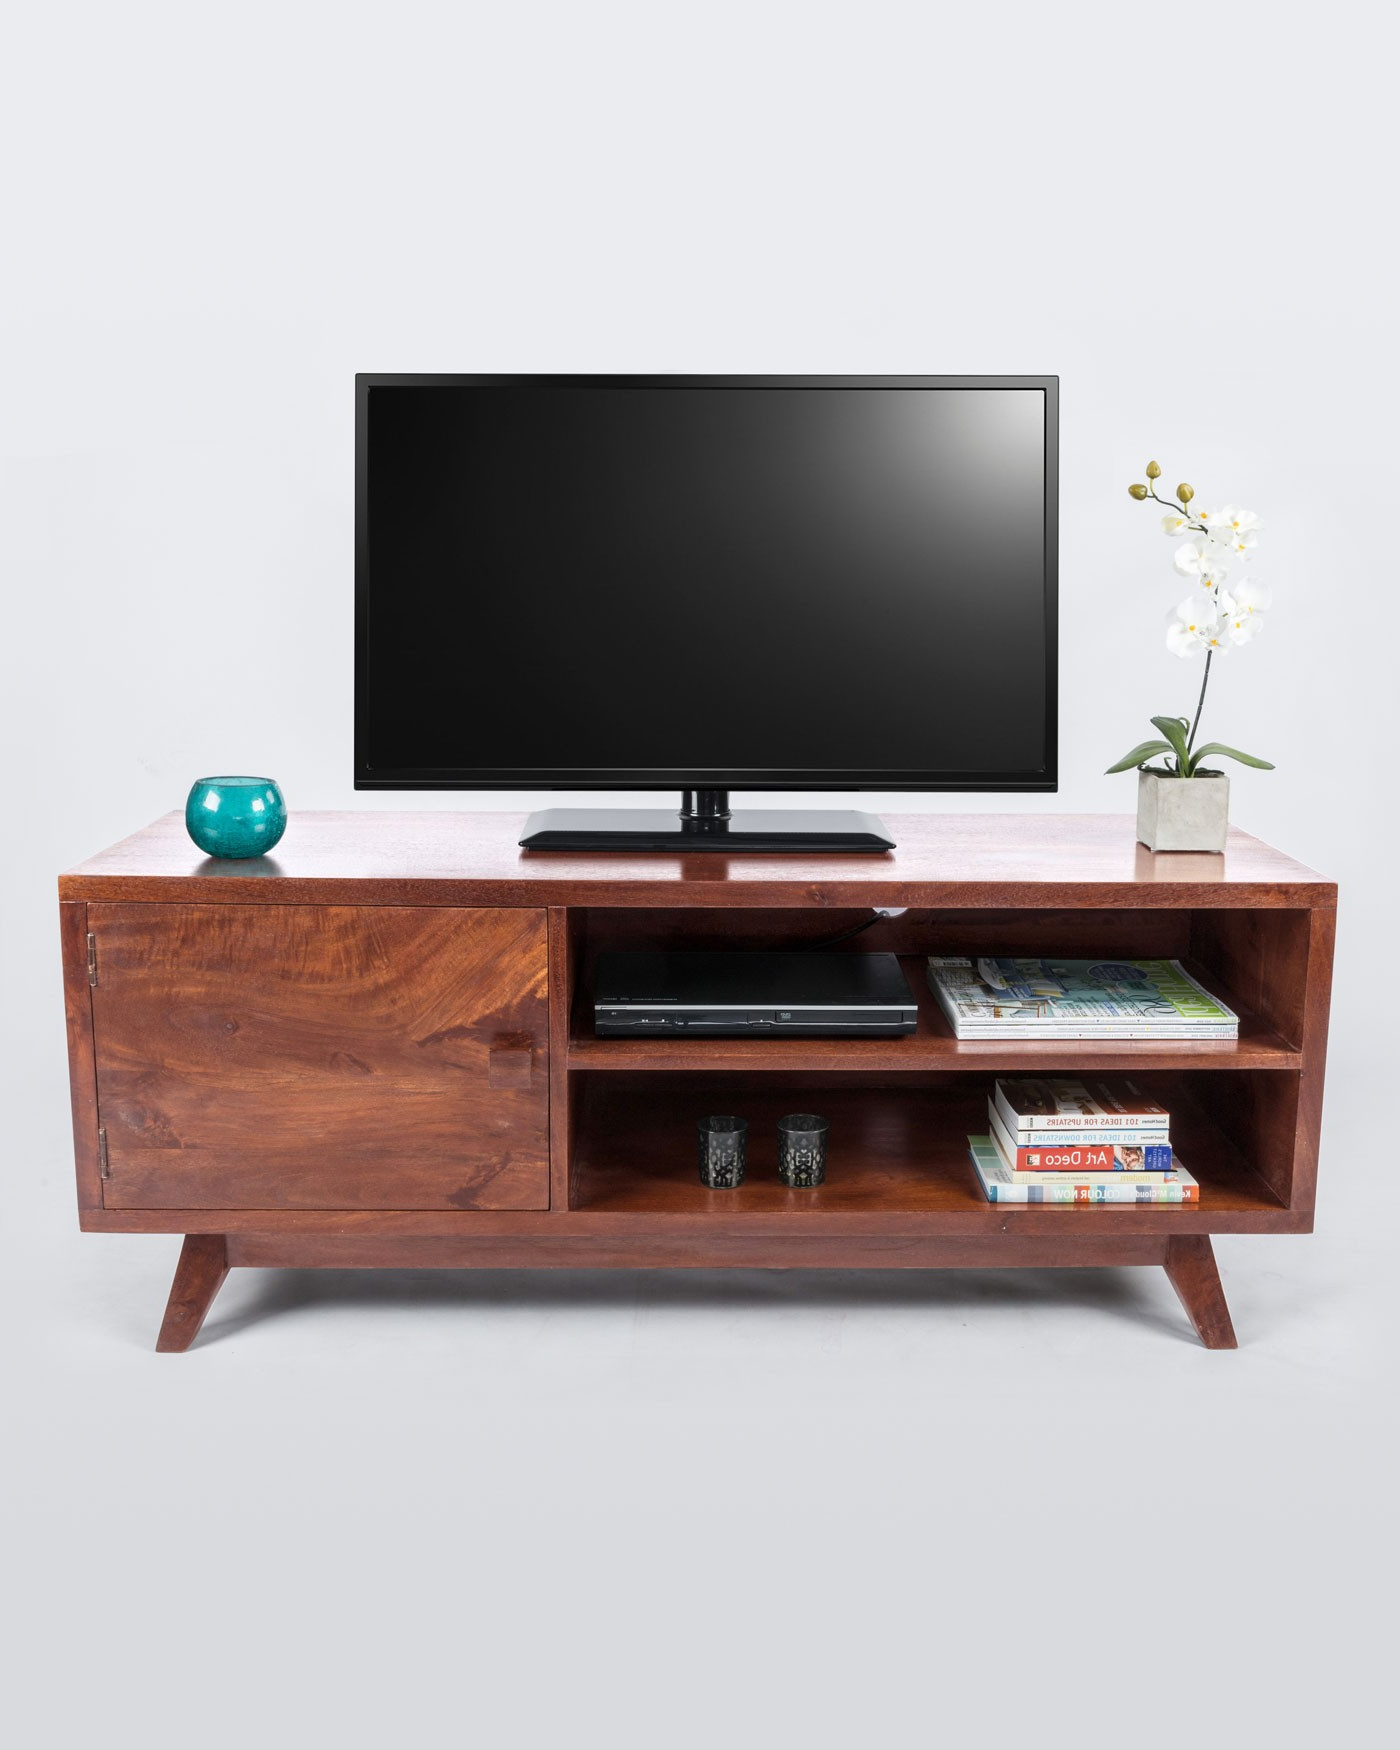 [%dark Wood Tv Stand With Shelf Retro Design 100% Solid Wood – Homescapes Throughout Most Recent Dark Wood Tv Stands|dark Wood Tv Stands For Famous Dark Wood Tv Stand With Shelf Retro Design 100% Solid Wood – Homescapes|recent Dark Wood Tv Stands With Dark Wood Tv Stand With Shelf Retro Design 100% Solid Wood – Homescapes|most Popular Dark Wood Tv Stand With Shelf Retro Design 100% Solid Wood – Homescapes Within Dark Wood Tv Stands%] (View 9 of 20)